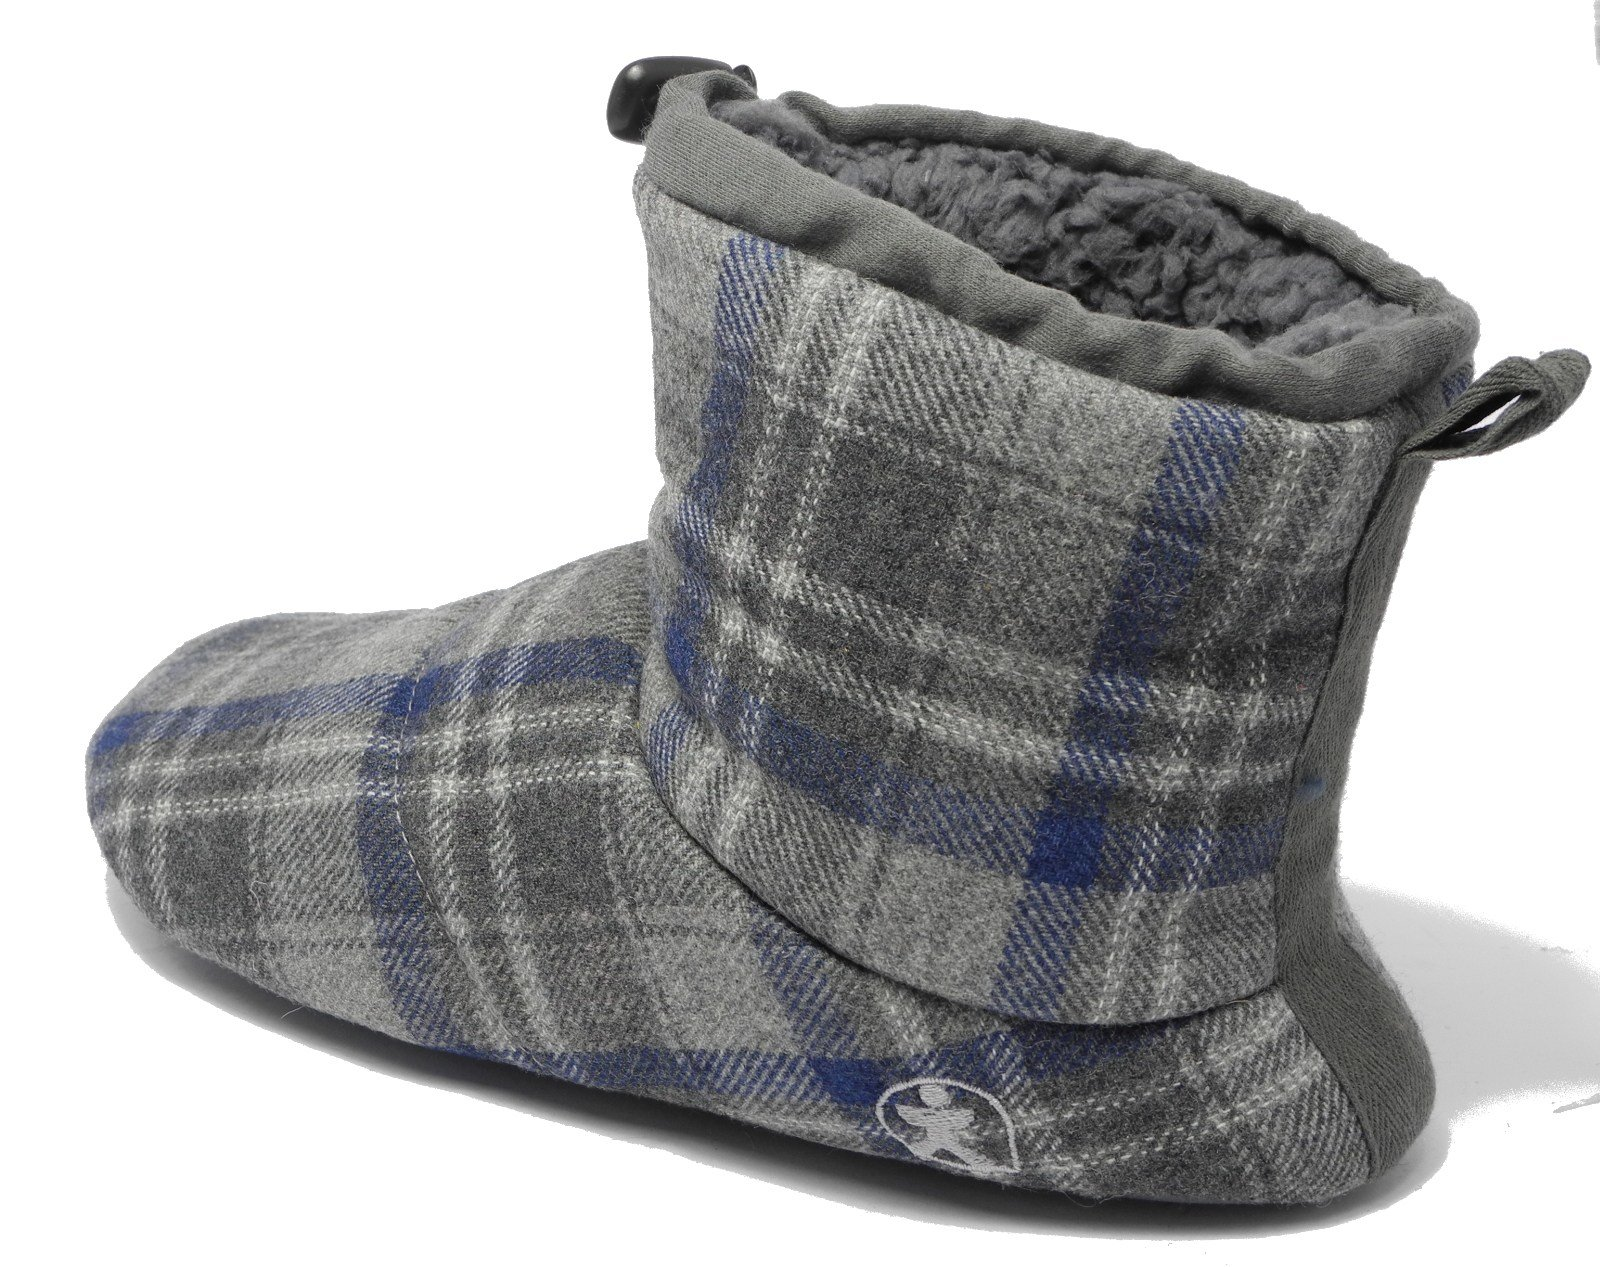 Best Mens Bedroom Athletics Brushed Cotton Soft Fleece Fur Boot B**T** Slippers 7 12 Ebay With Pictures